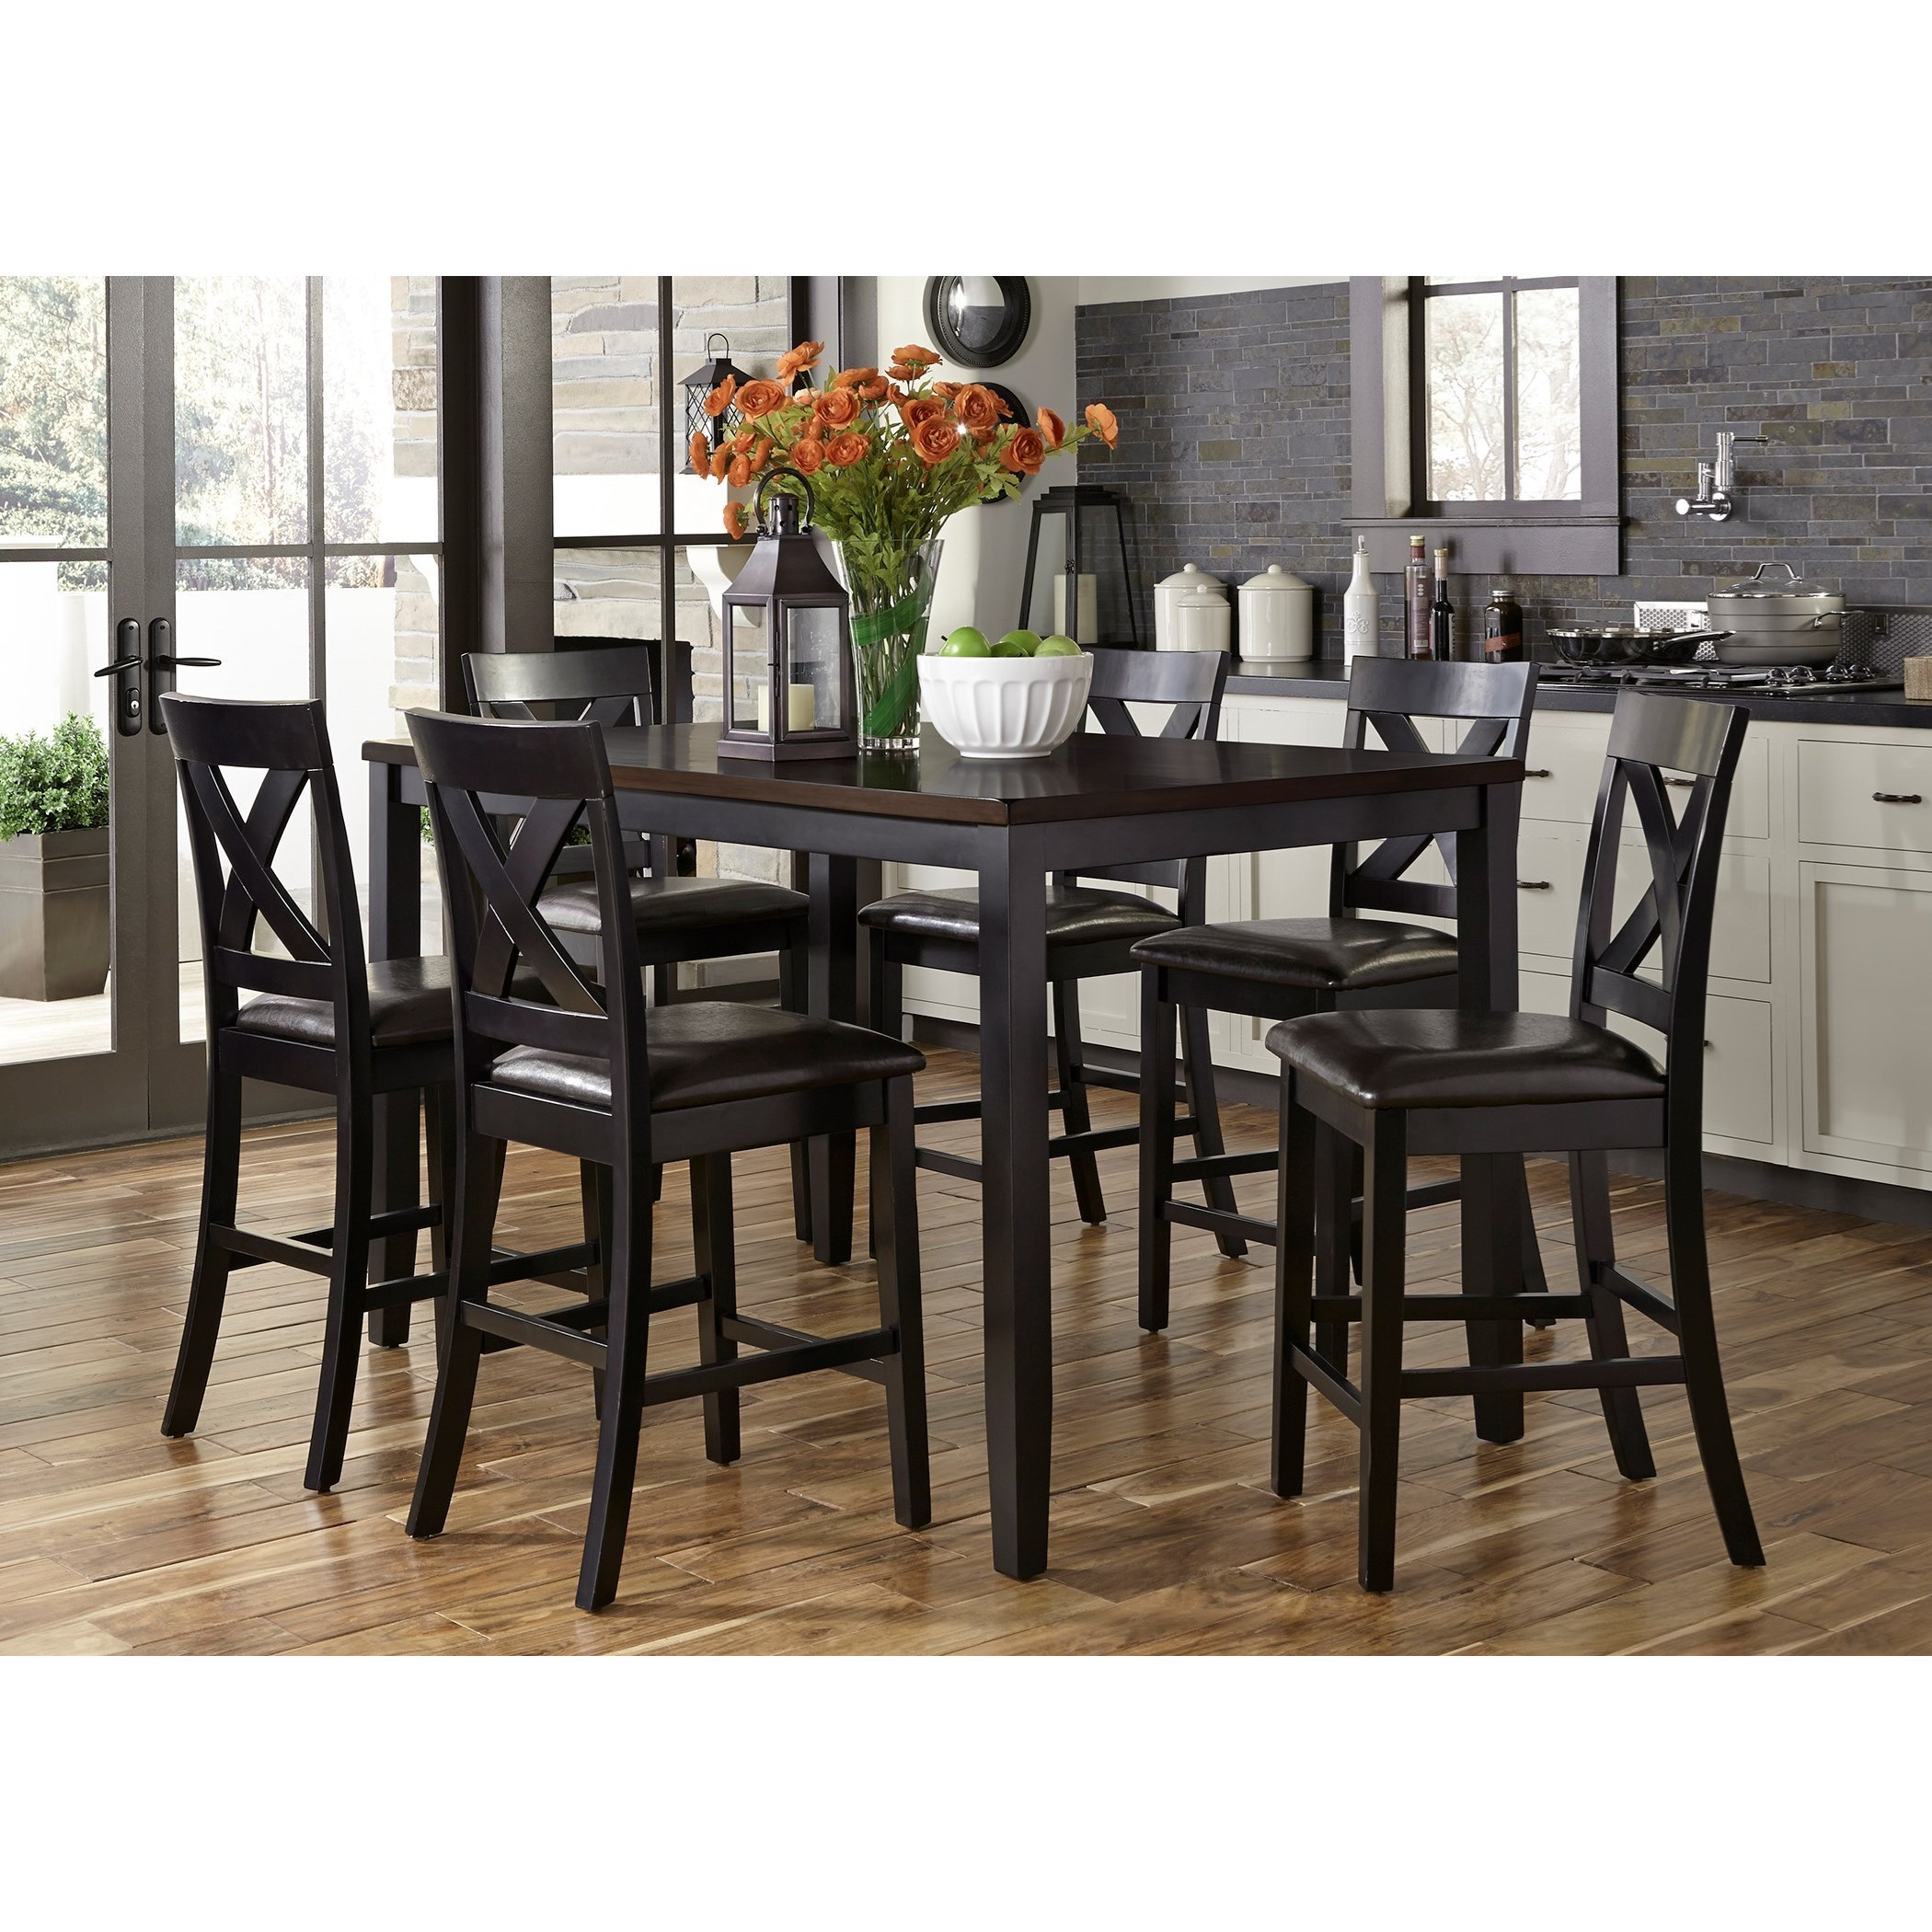 Liberty Furniture Thornton7 Piece Gathering Table Set  sc 1 st  Dinette Depot & Liberty Furniture Thornton 7 Piece Gathering Table Set | Dinette ...